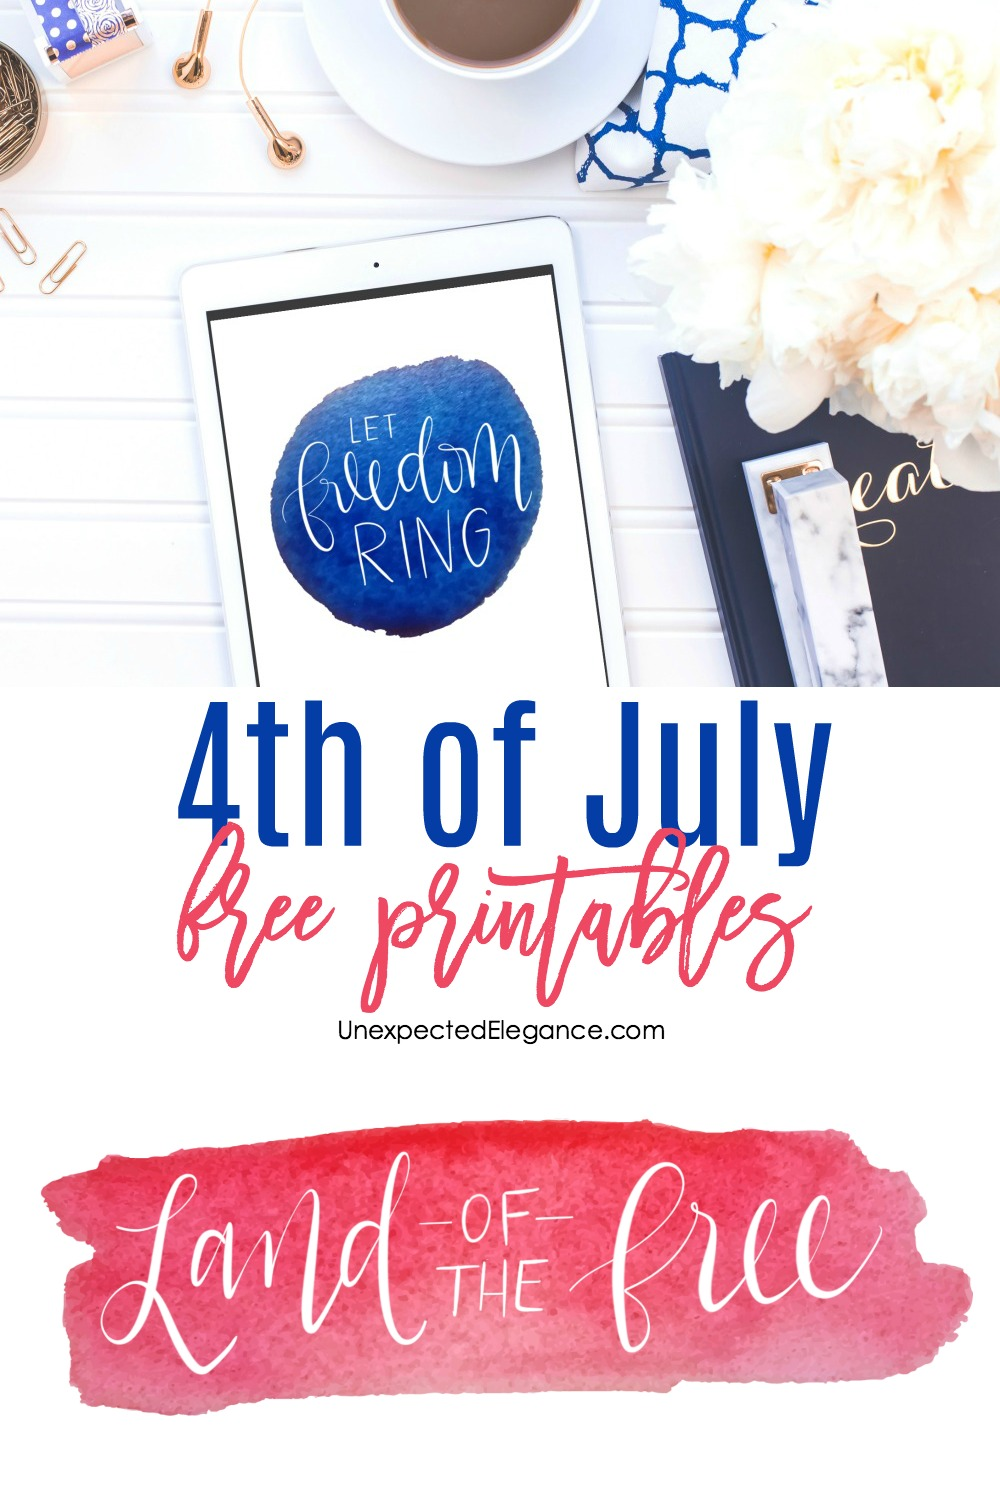 Get these 4th of July FREE printables today! This is a super easy way to add a little bit of festive decor to your home, if you are having a party! Click HERE now to download.